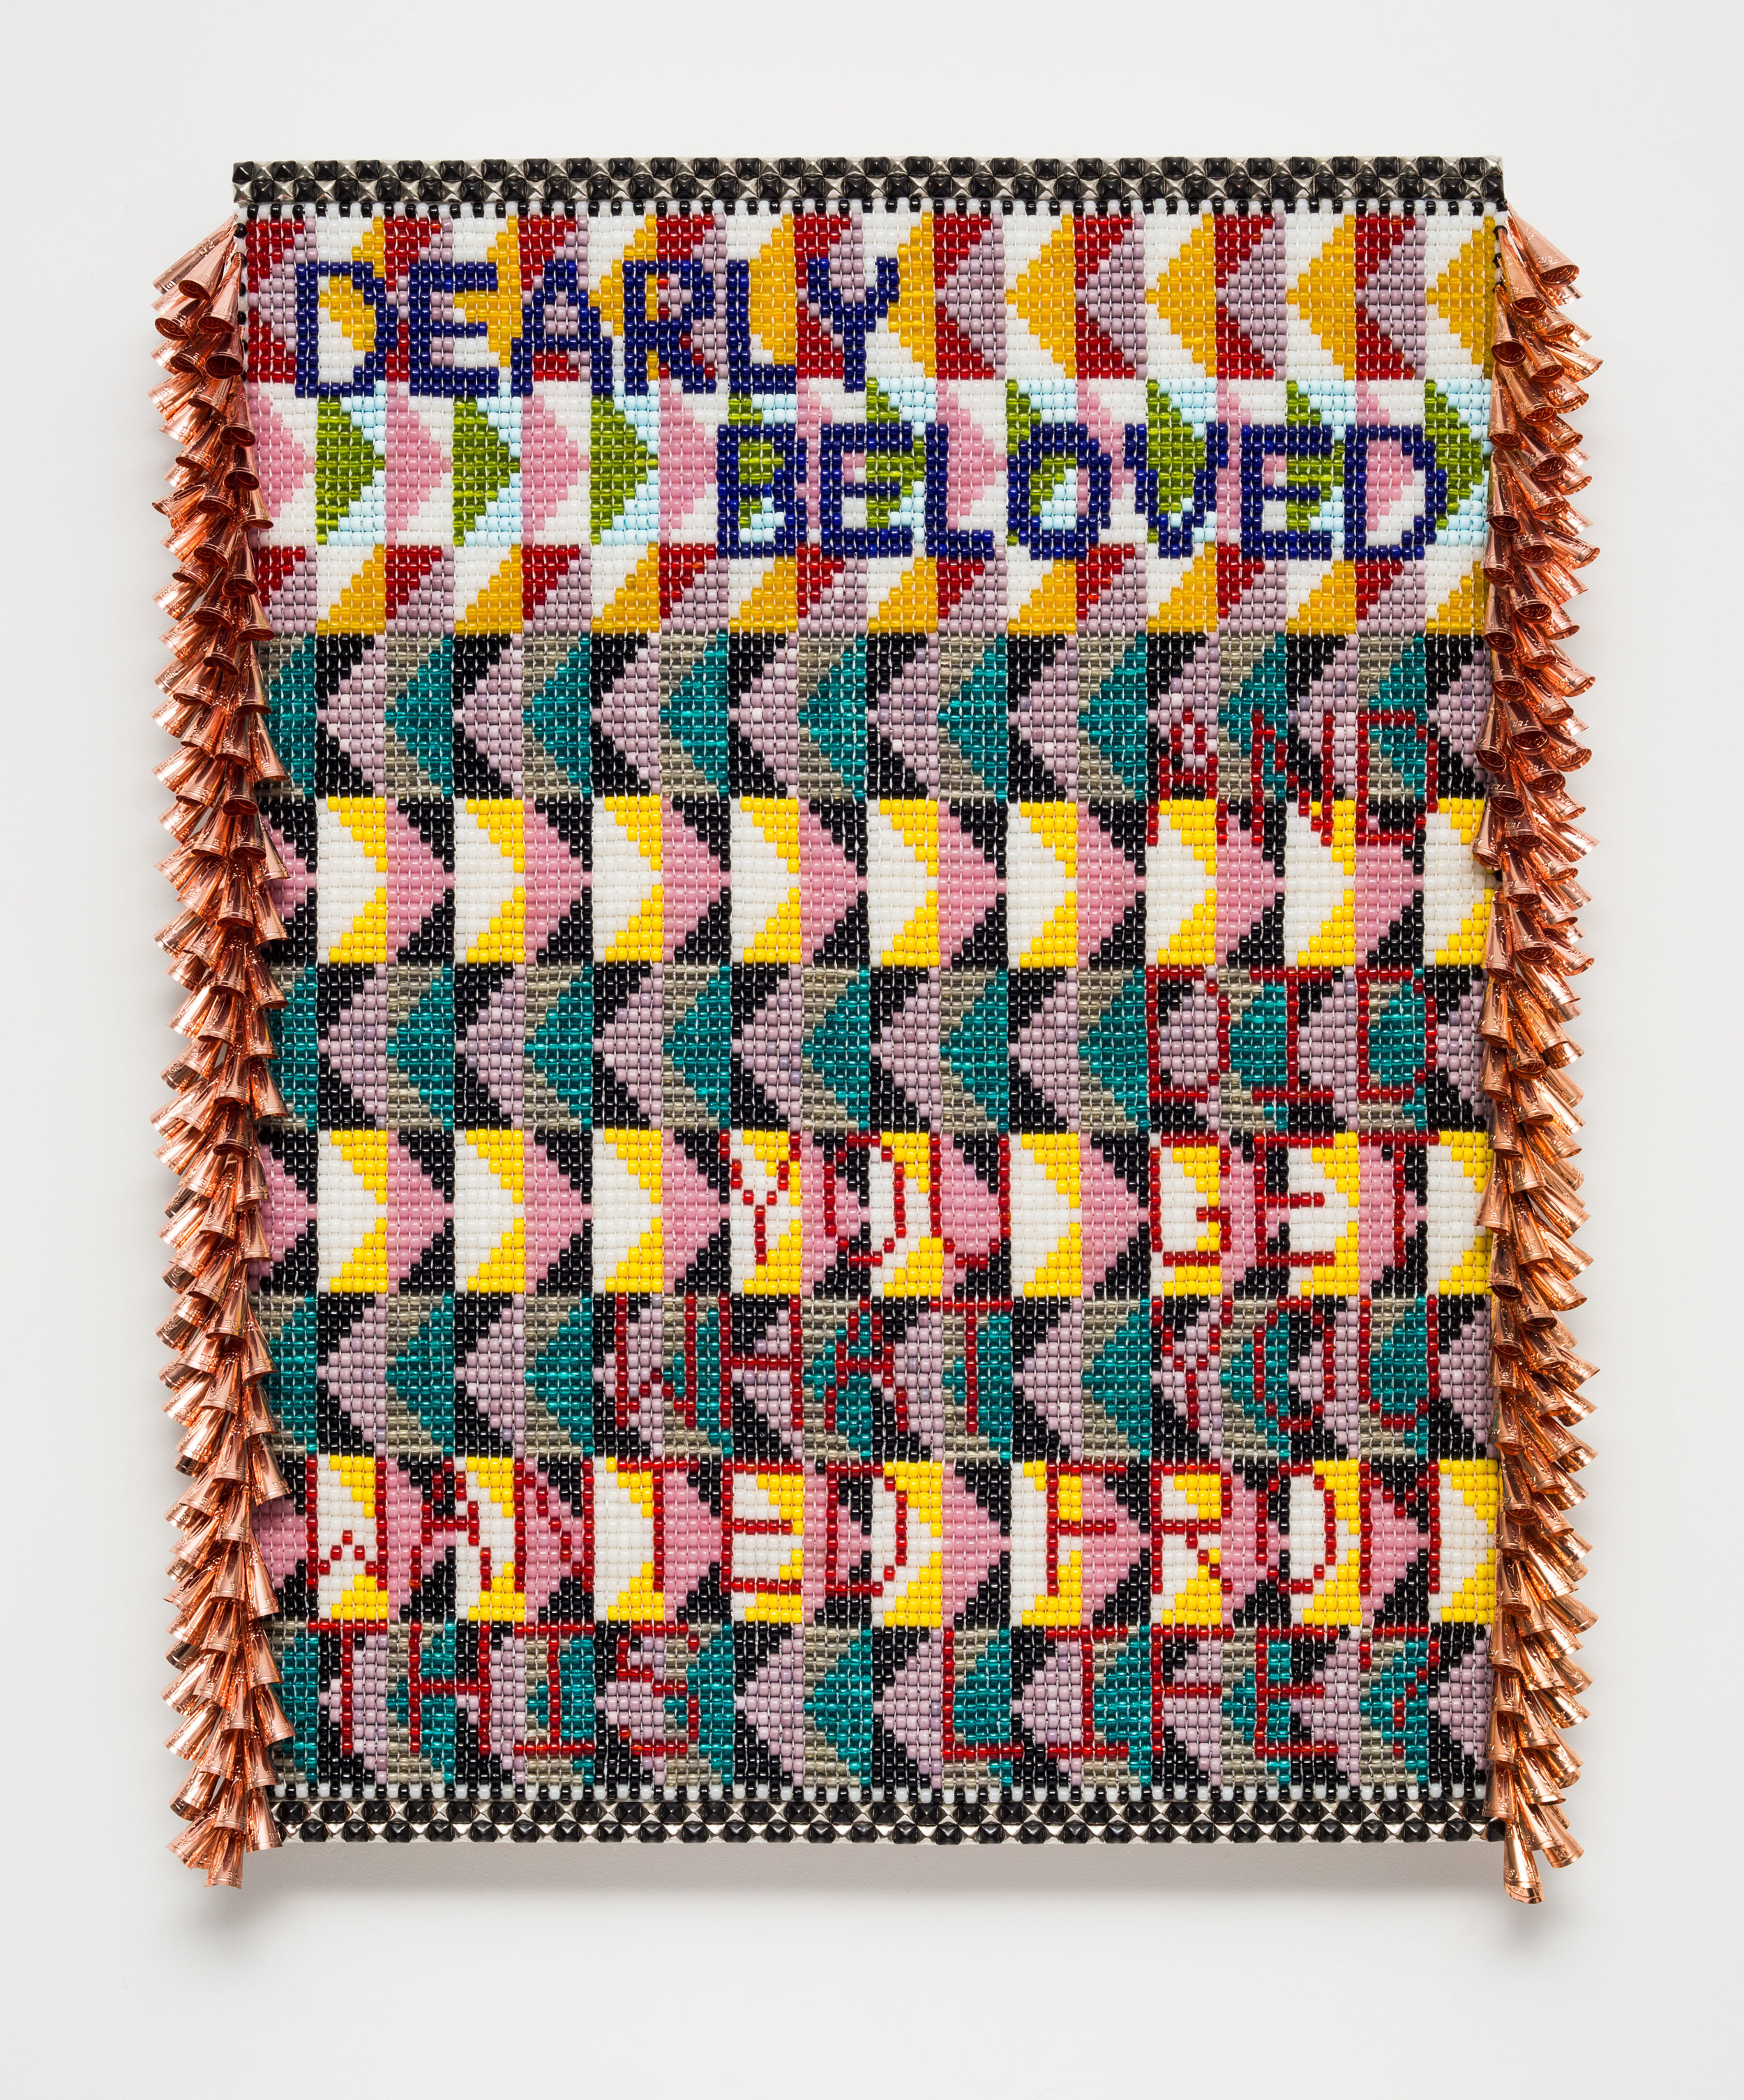 "Jeffrey Gibson. ""DEARLY BELOVED...AND DID YOU GET WHAT YOU WANTED FROM THIS LIFE?"" (2017). Glass beads, artificial sinew, metal studs, copper jingles, acrylic felt, over wood panel. 42 x 31.5 INCHES."